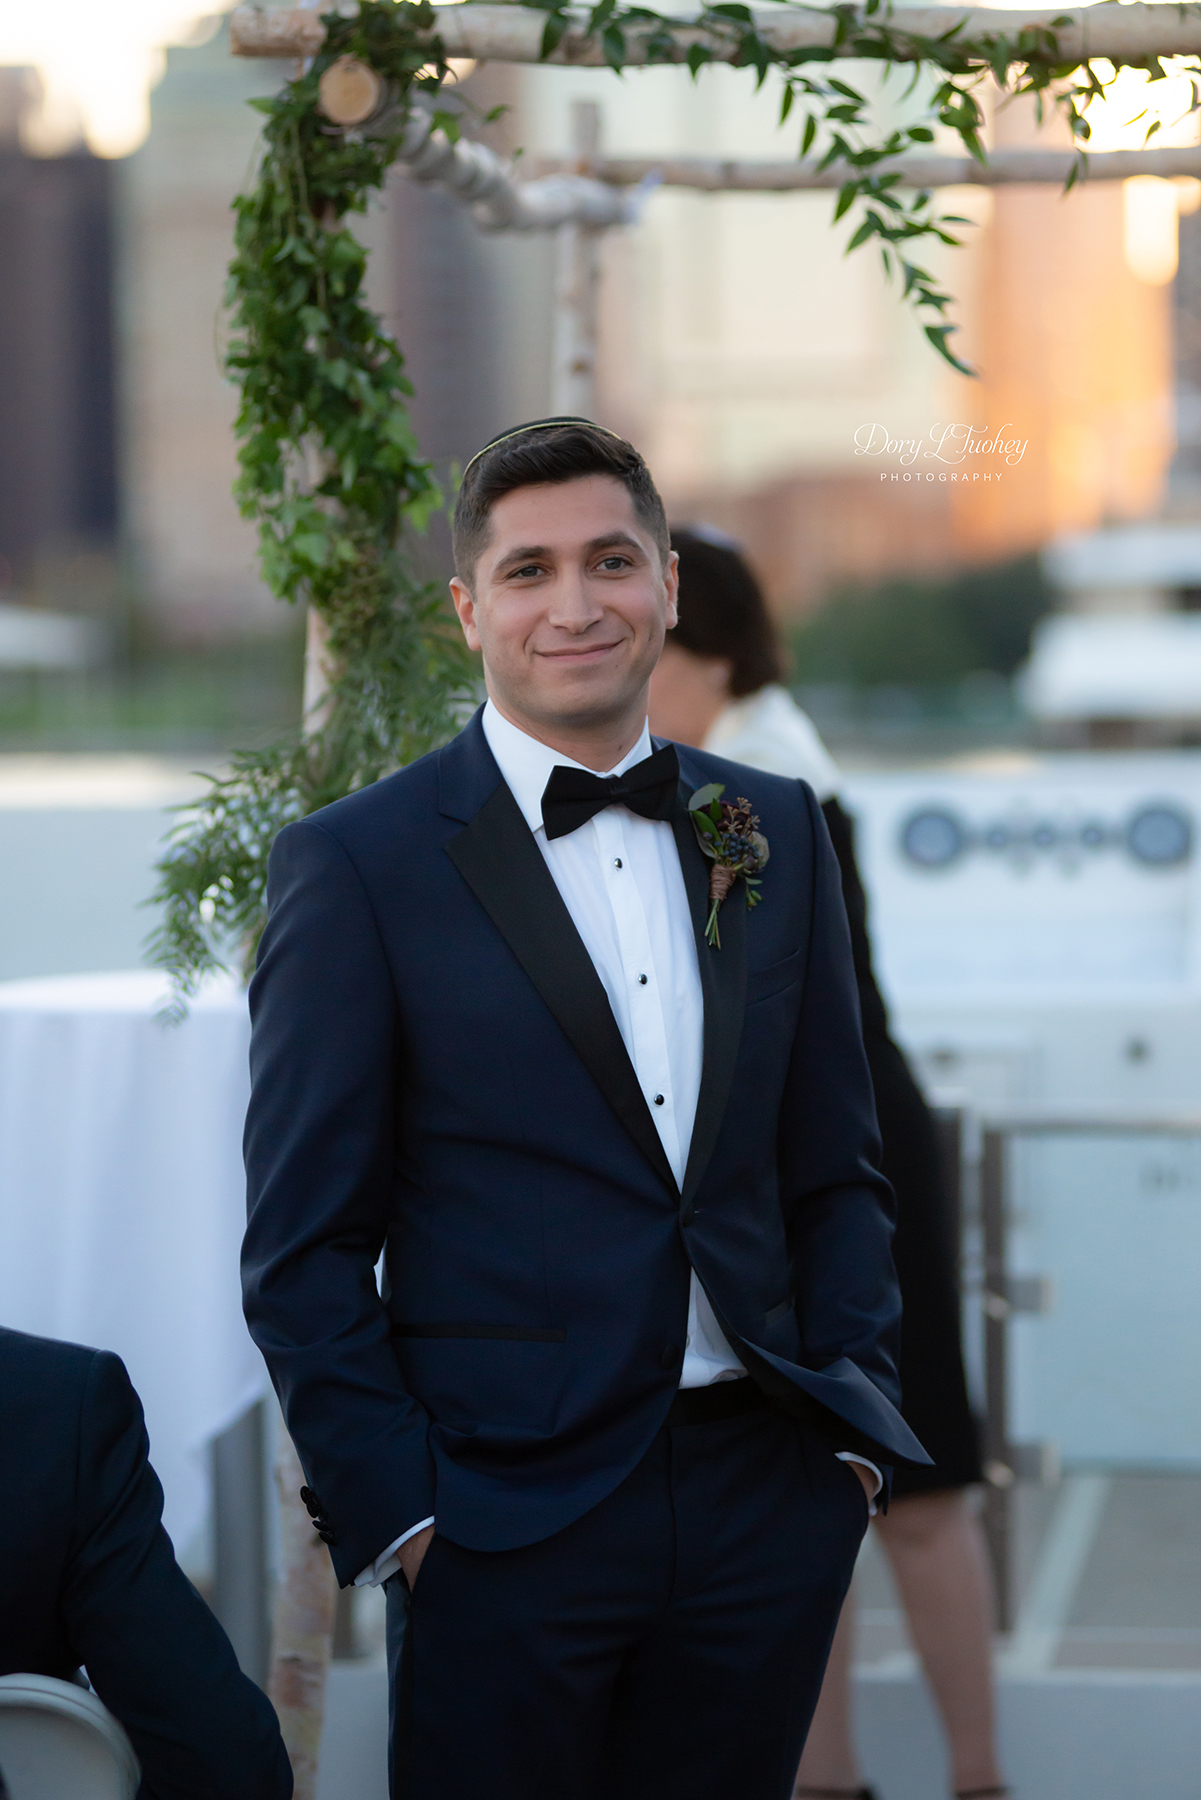 Dory_chicago_wedding_navy_pier_boat_cruise_skyline_sunset_jewish_bride_groom_18.jpg